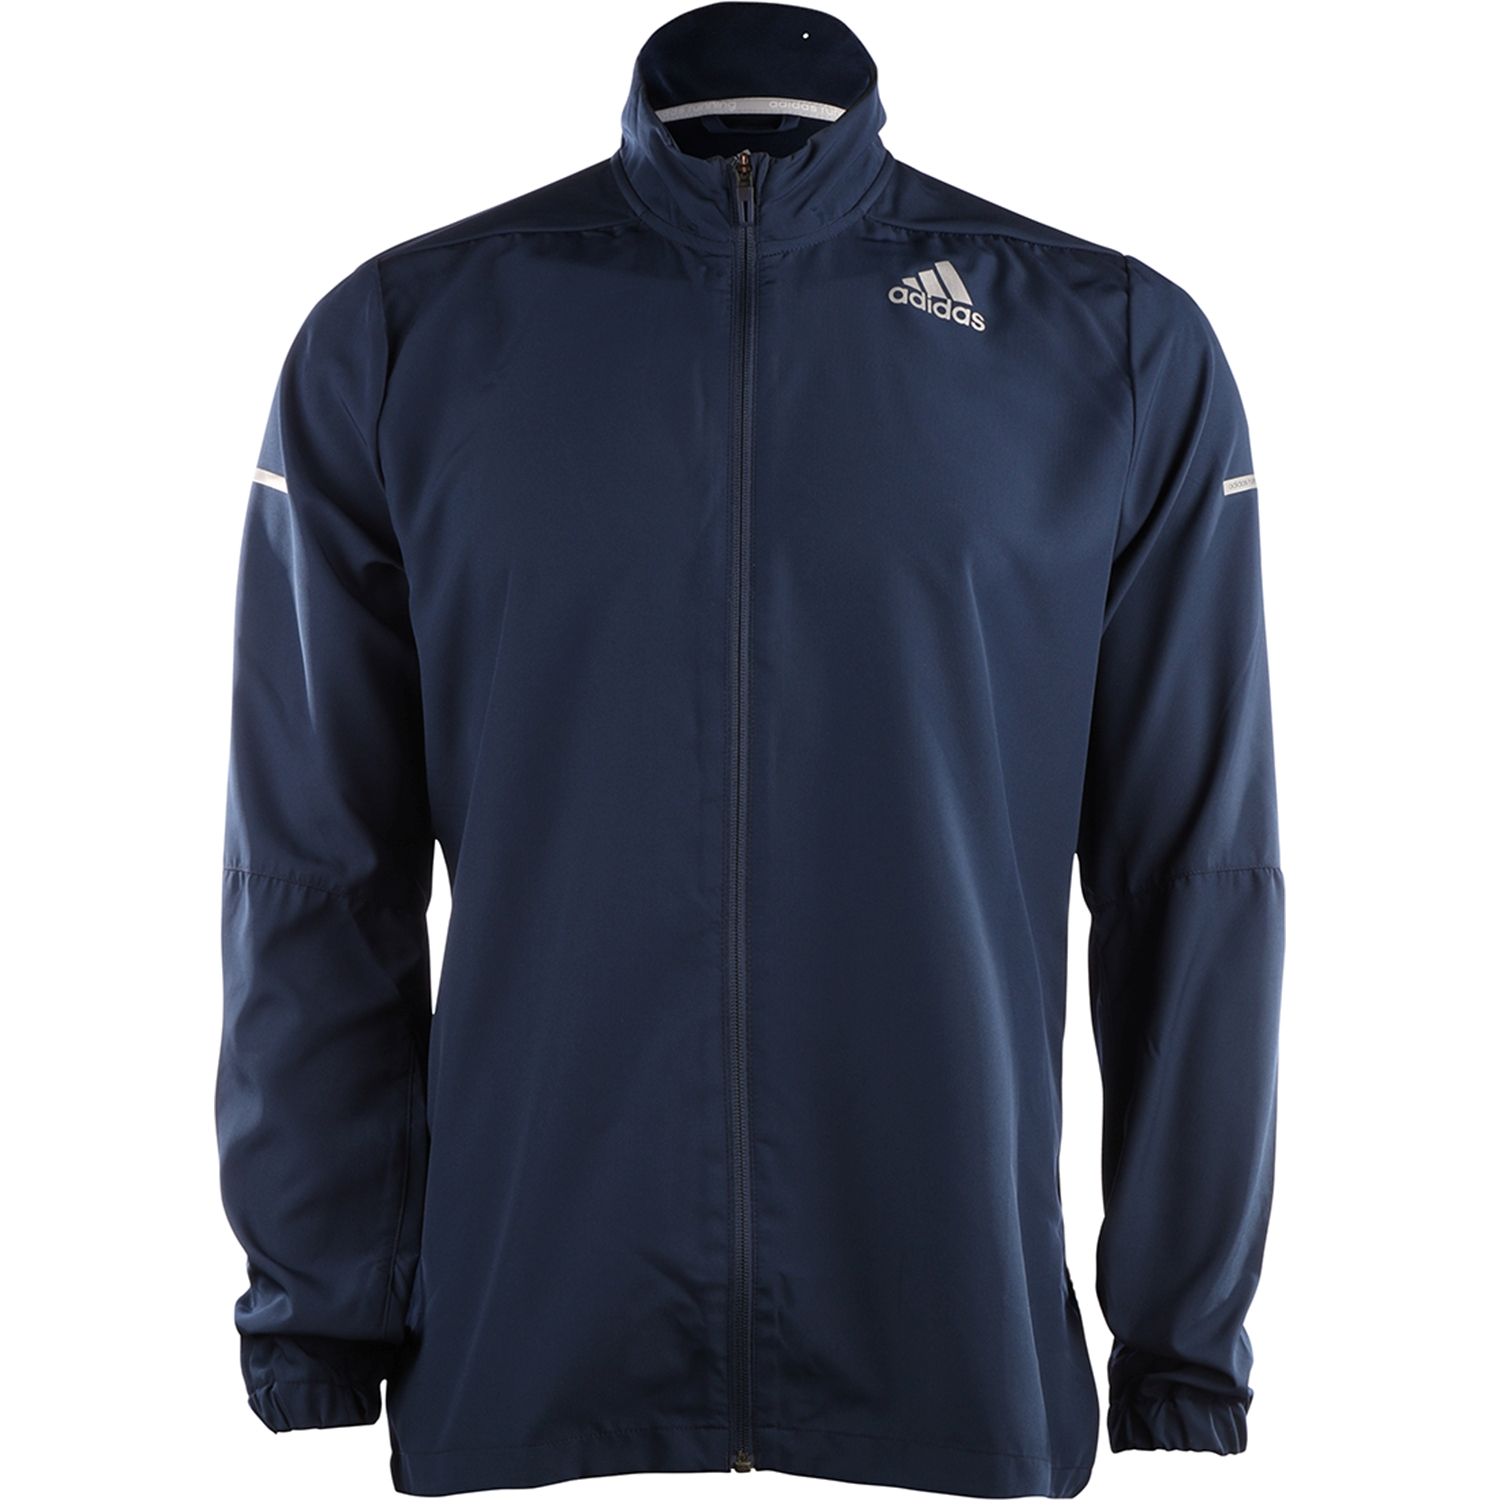 adidas_run_wind_jacket_man-29896175-1